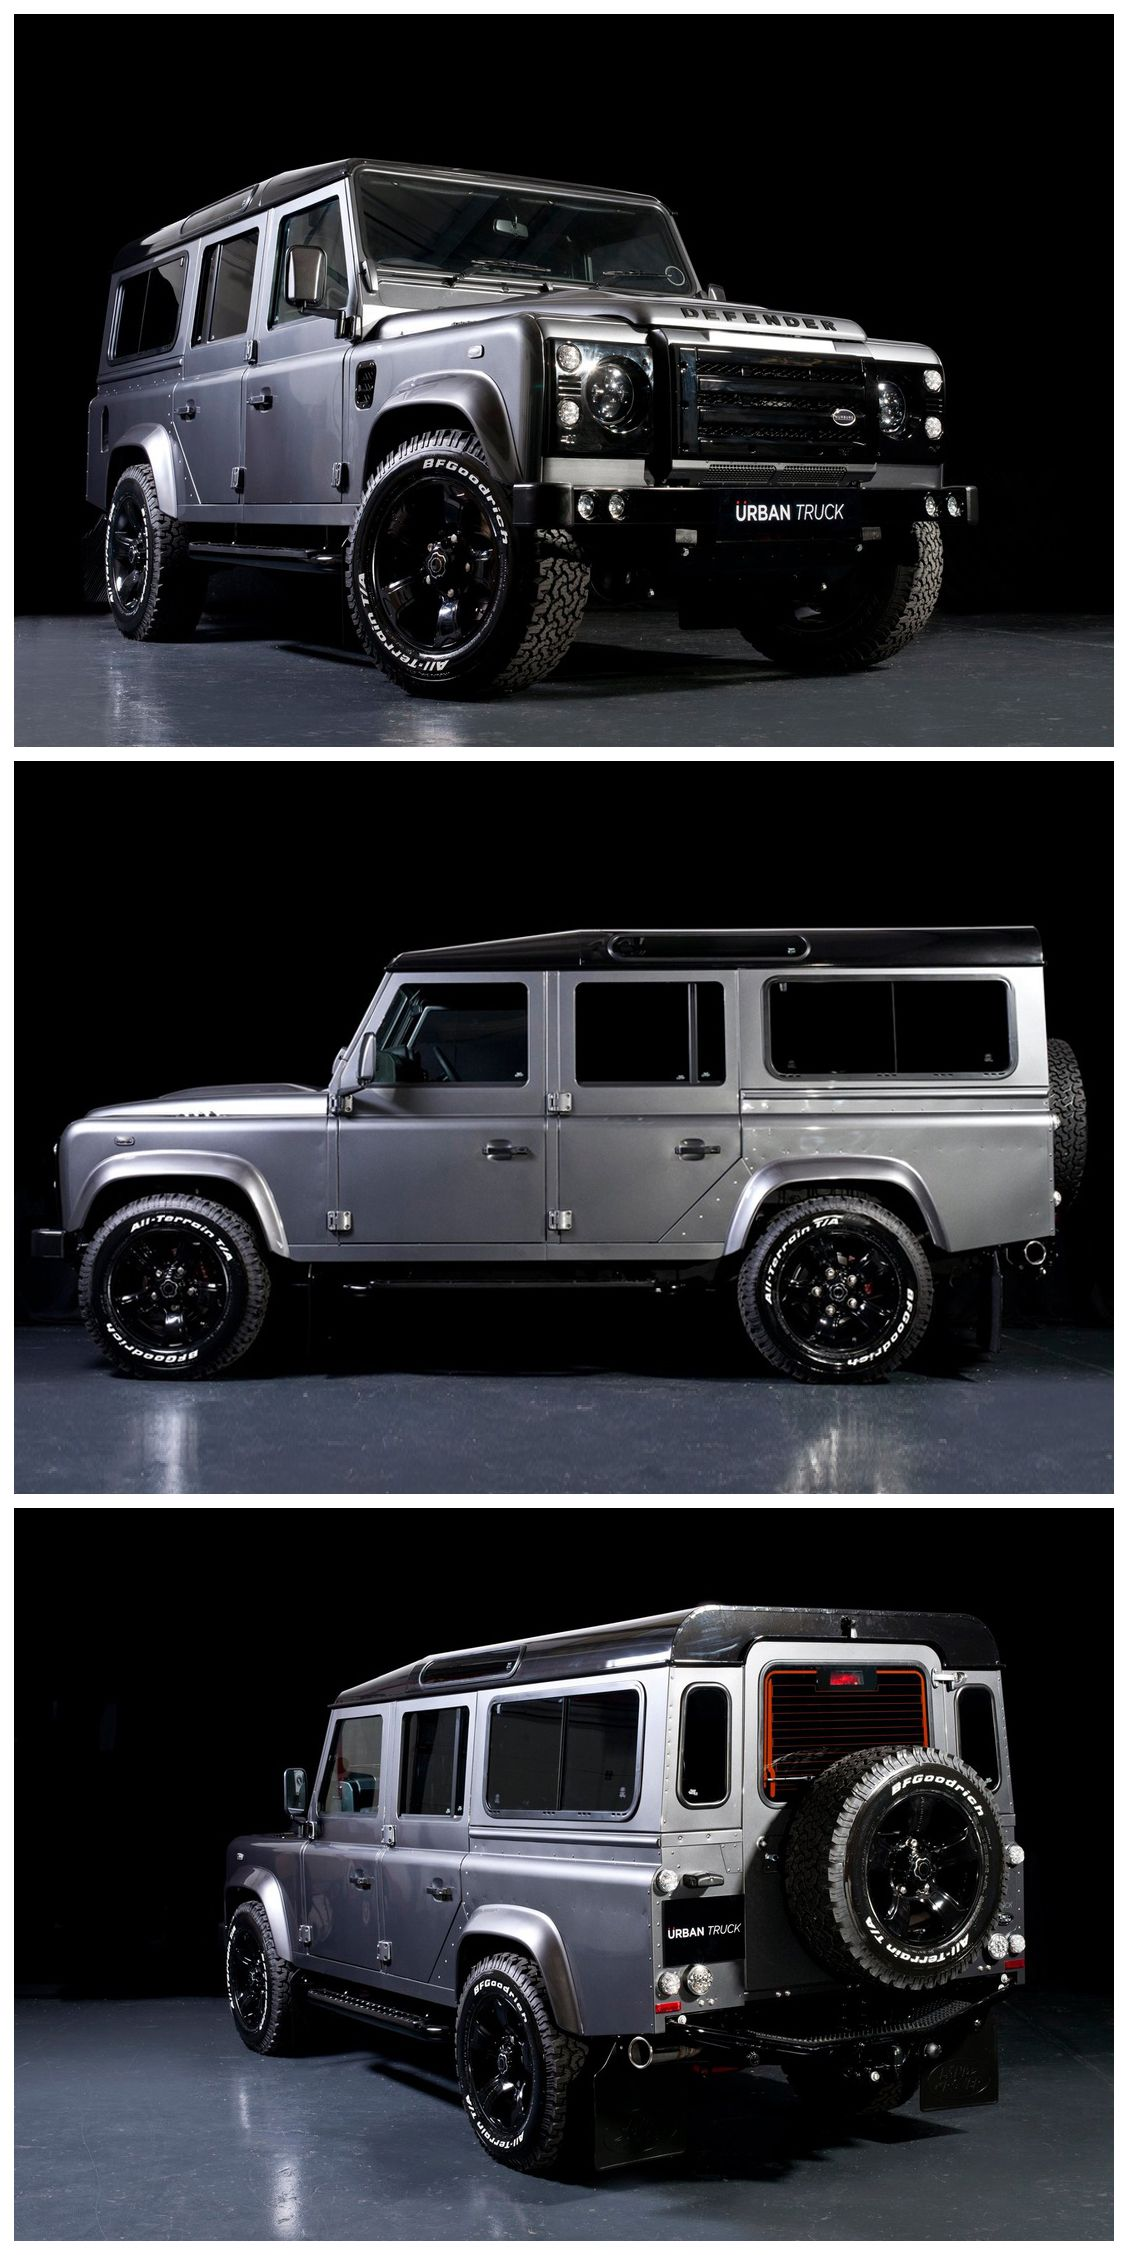 Land Rover Defender 110 Urban Truck Ultimate Edition